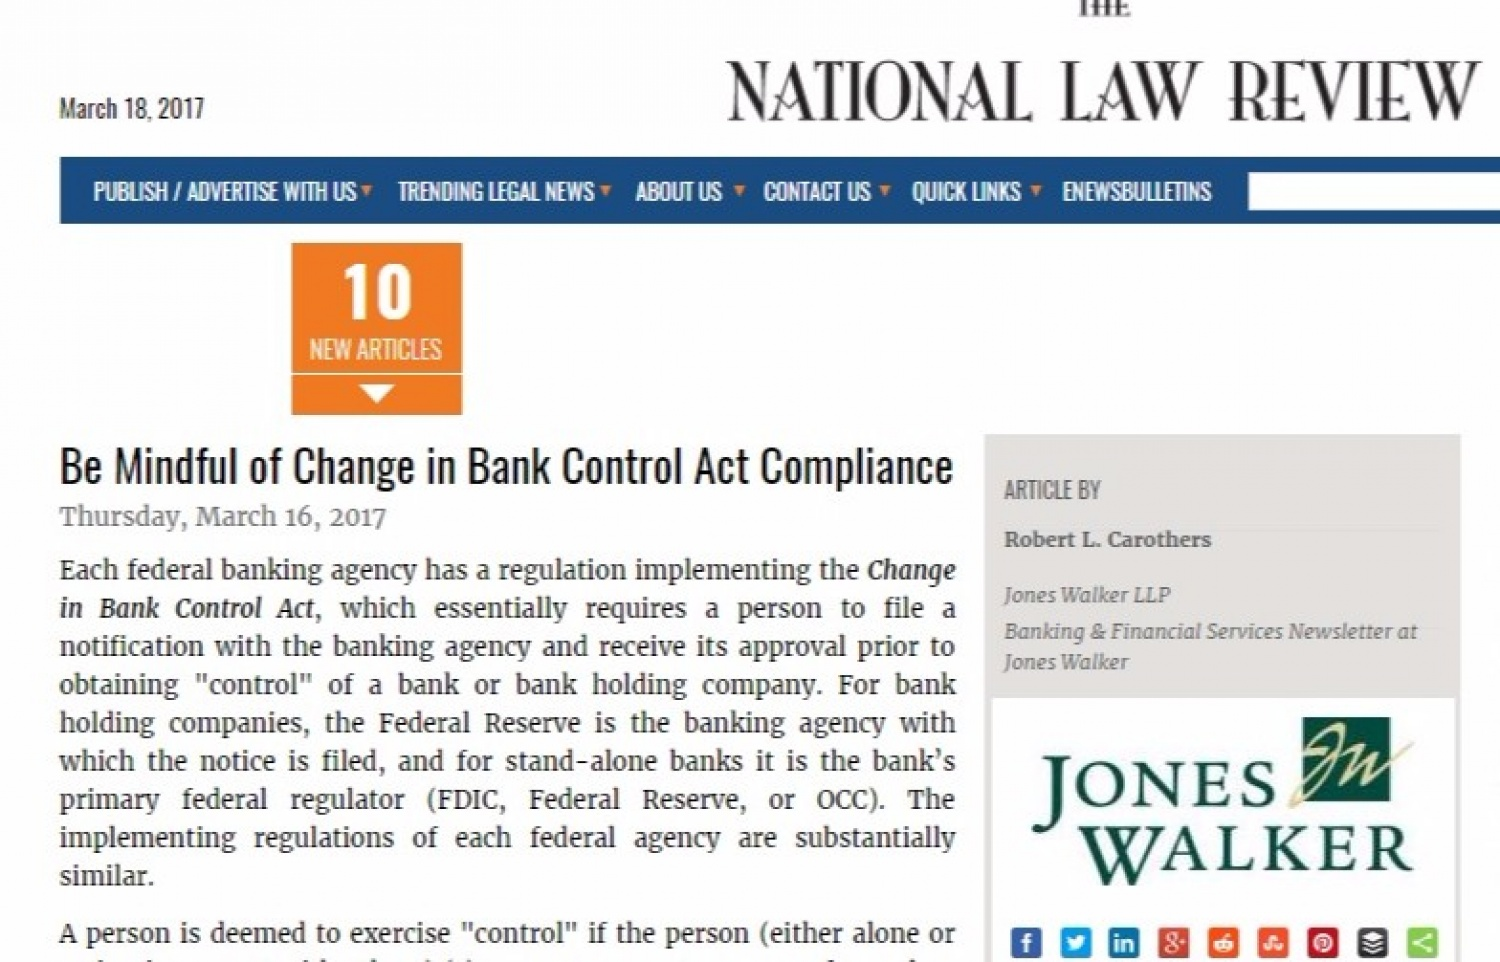 Be Mindful of Change in Bank Control Act Compliance